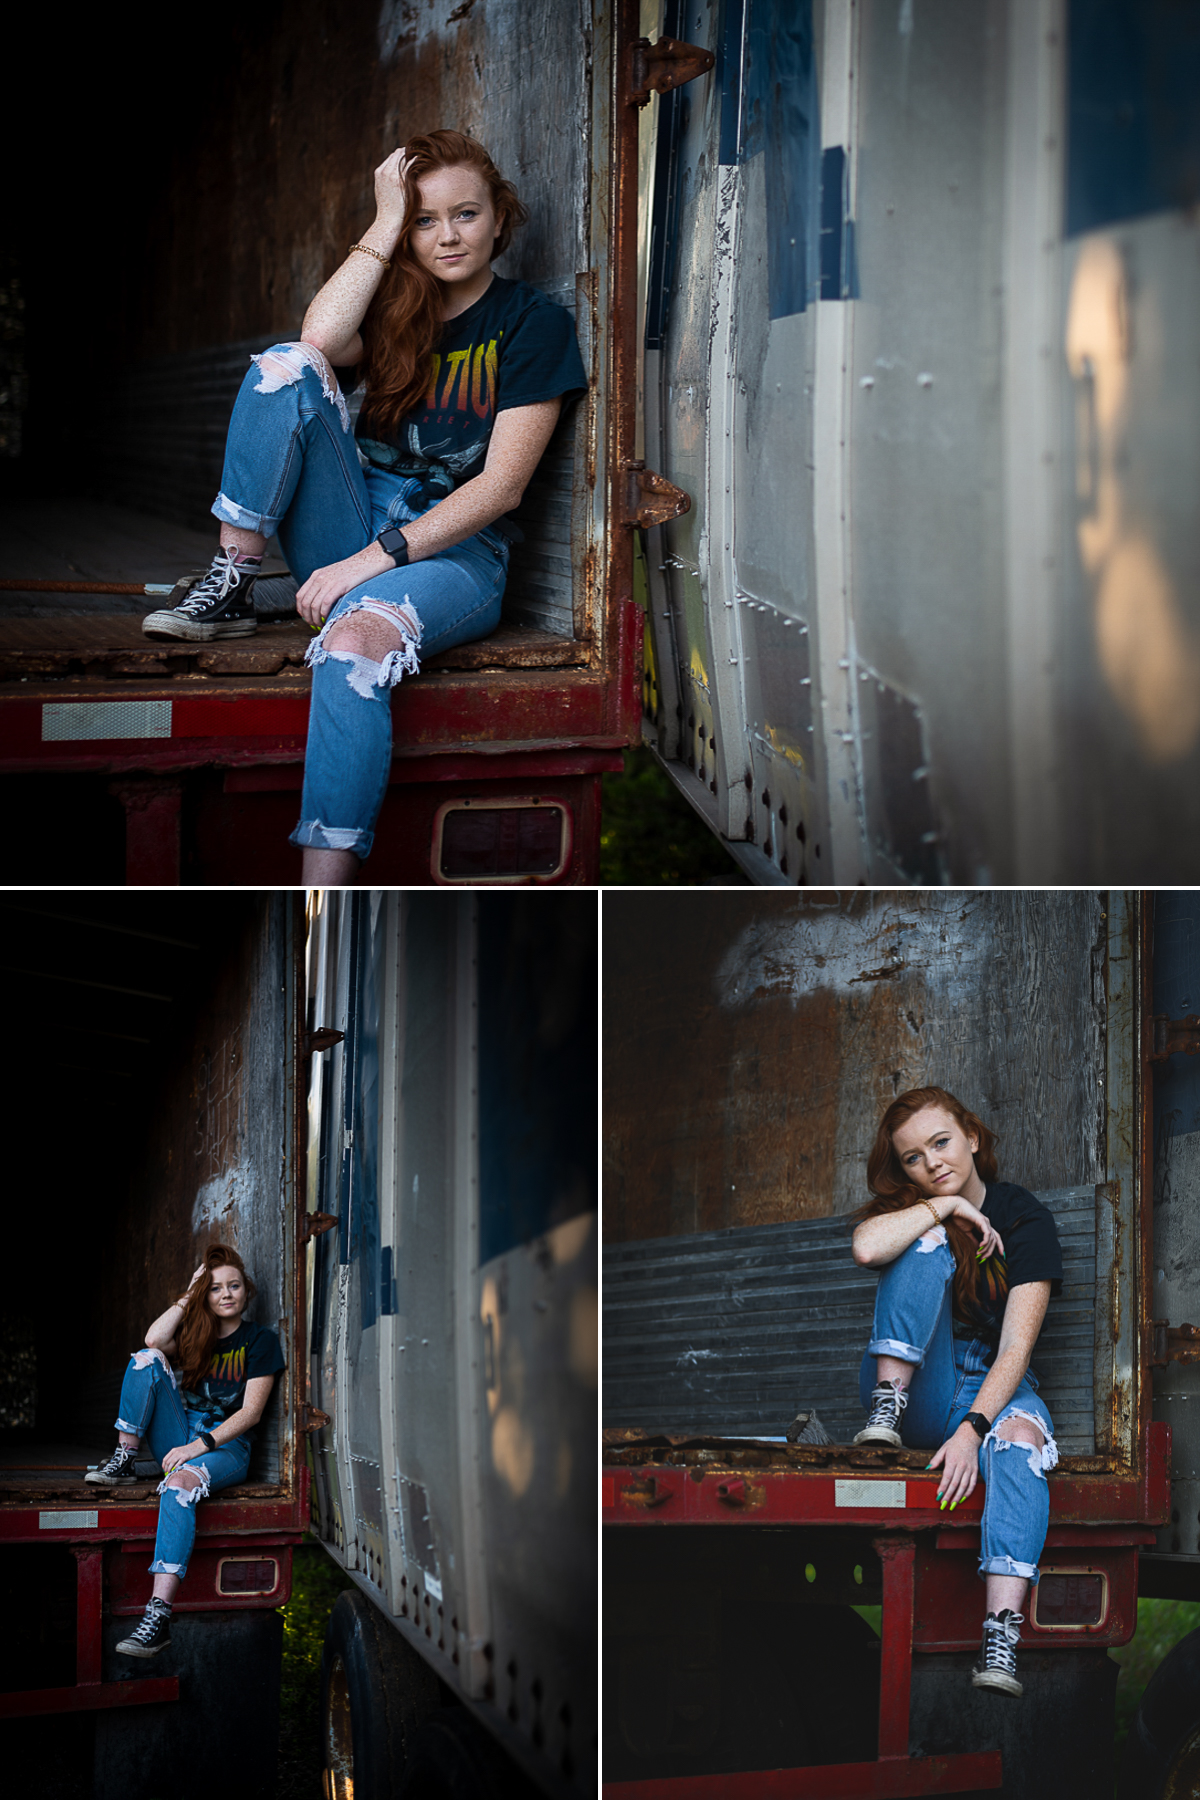 Senior-photography-junkyard-session-forrest-illinois-1.jpg